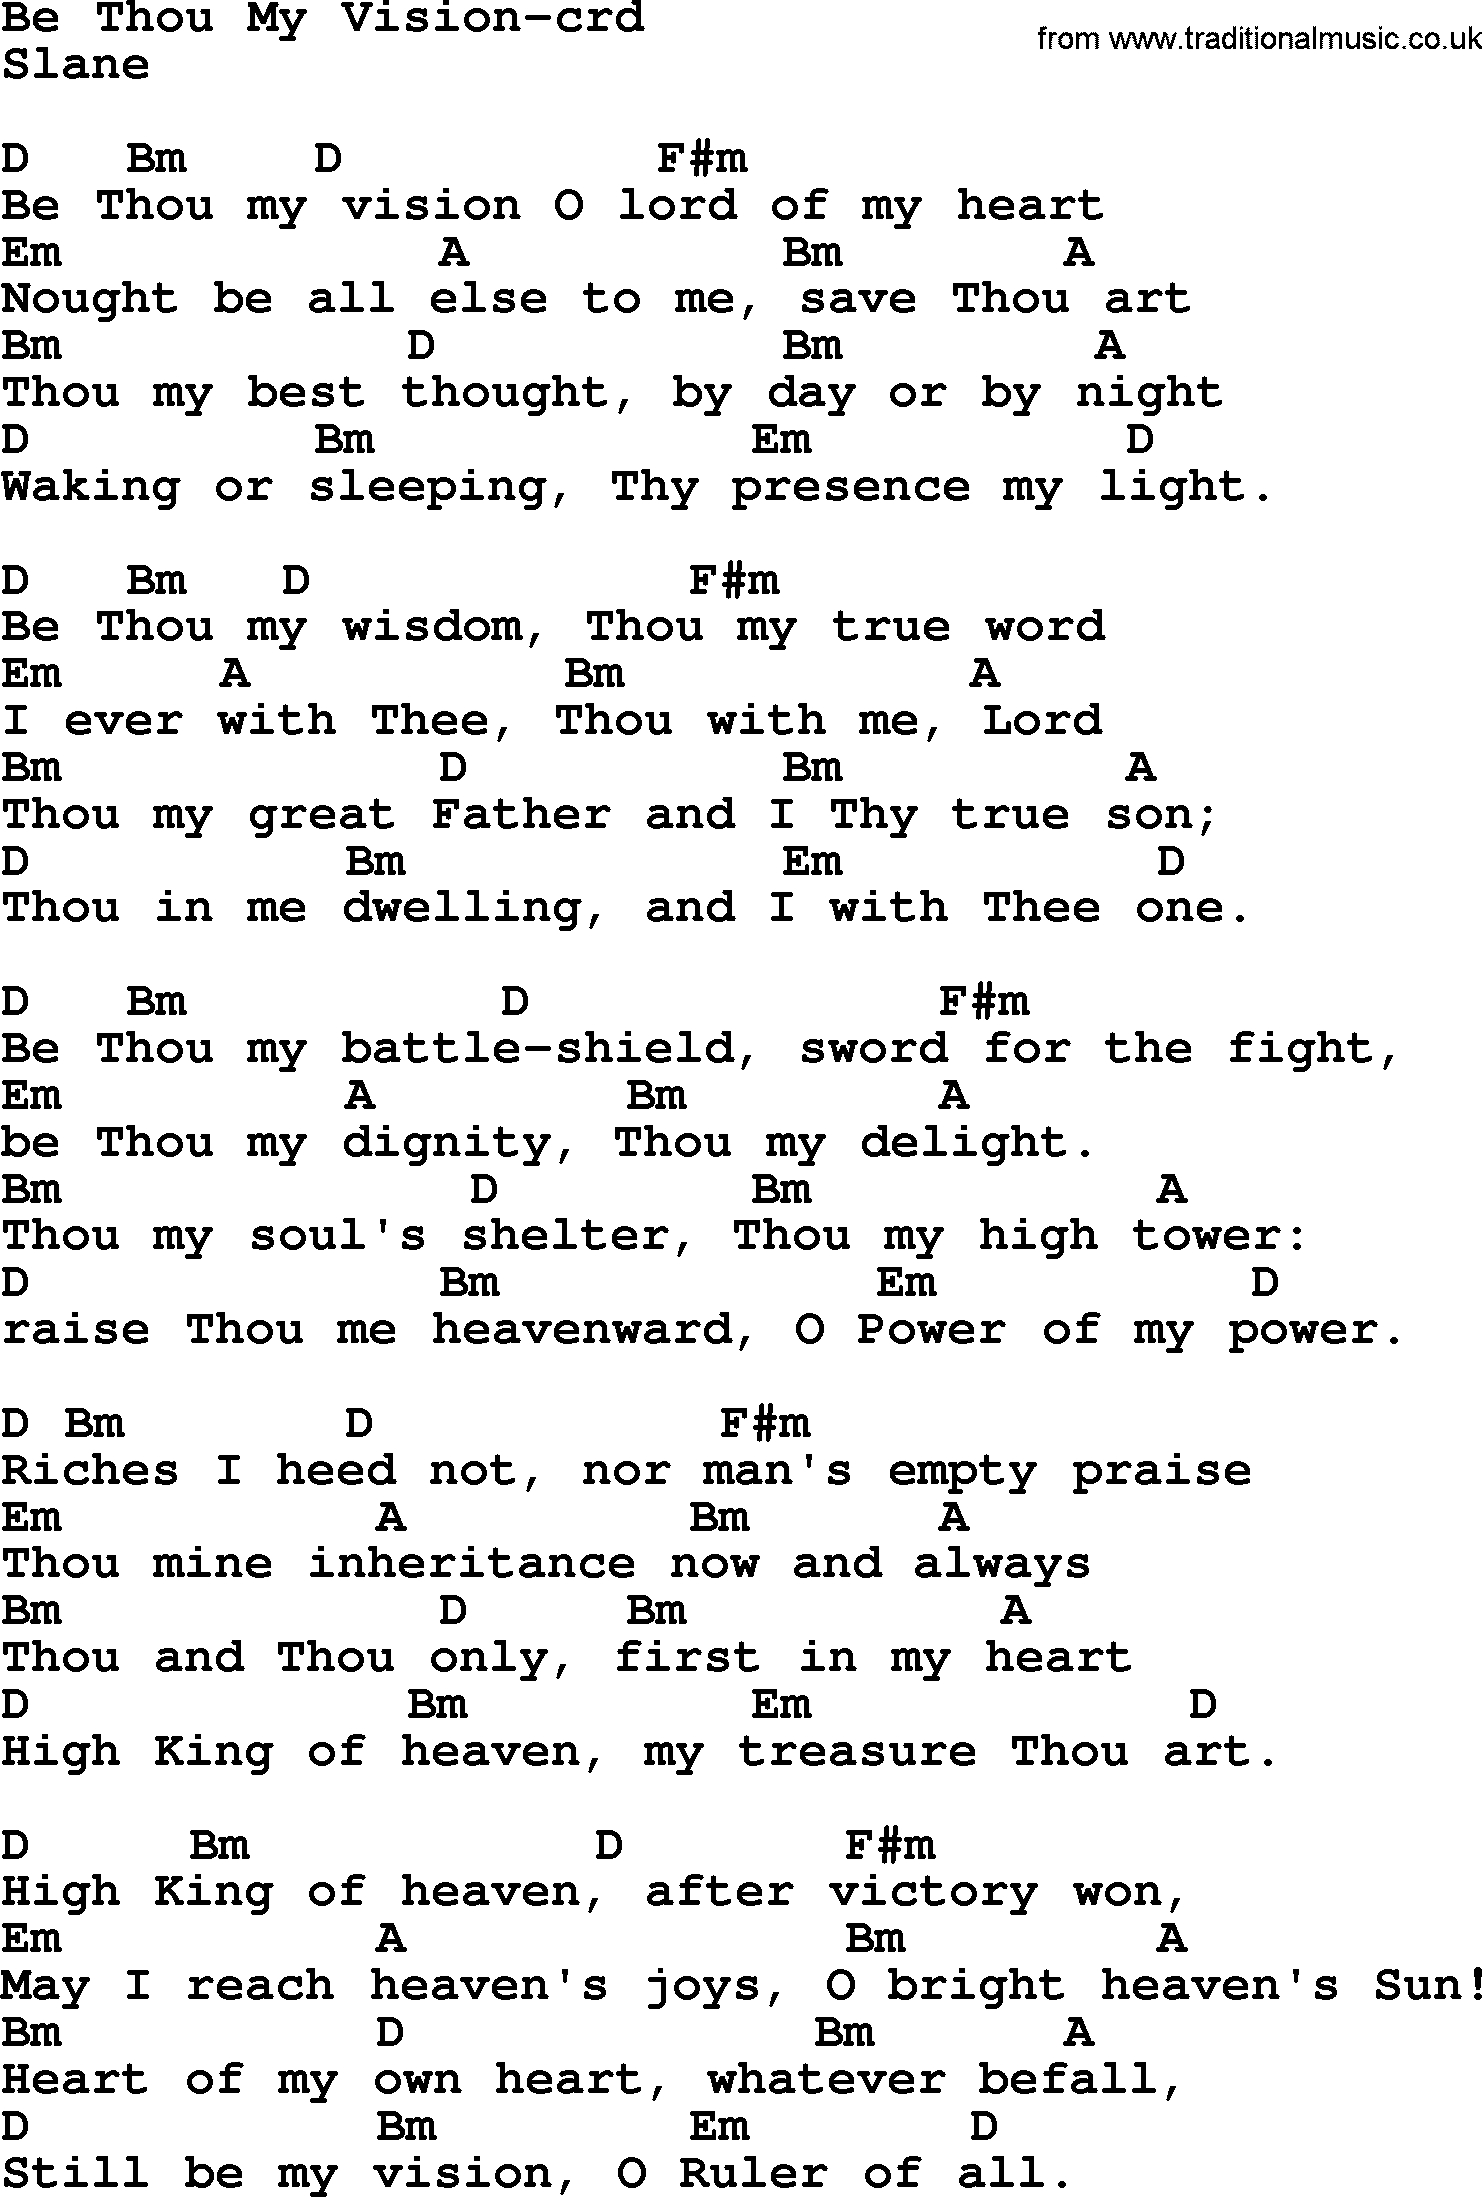 Be Thou My Vision Chords Top 500 Hymn Be Thou My Vision Lyrics Chords And Pdf